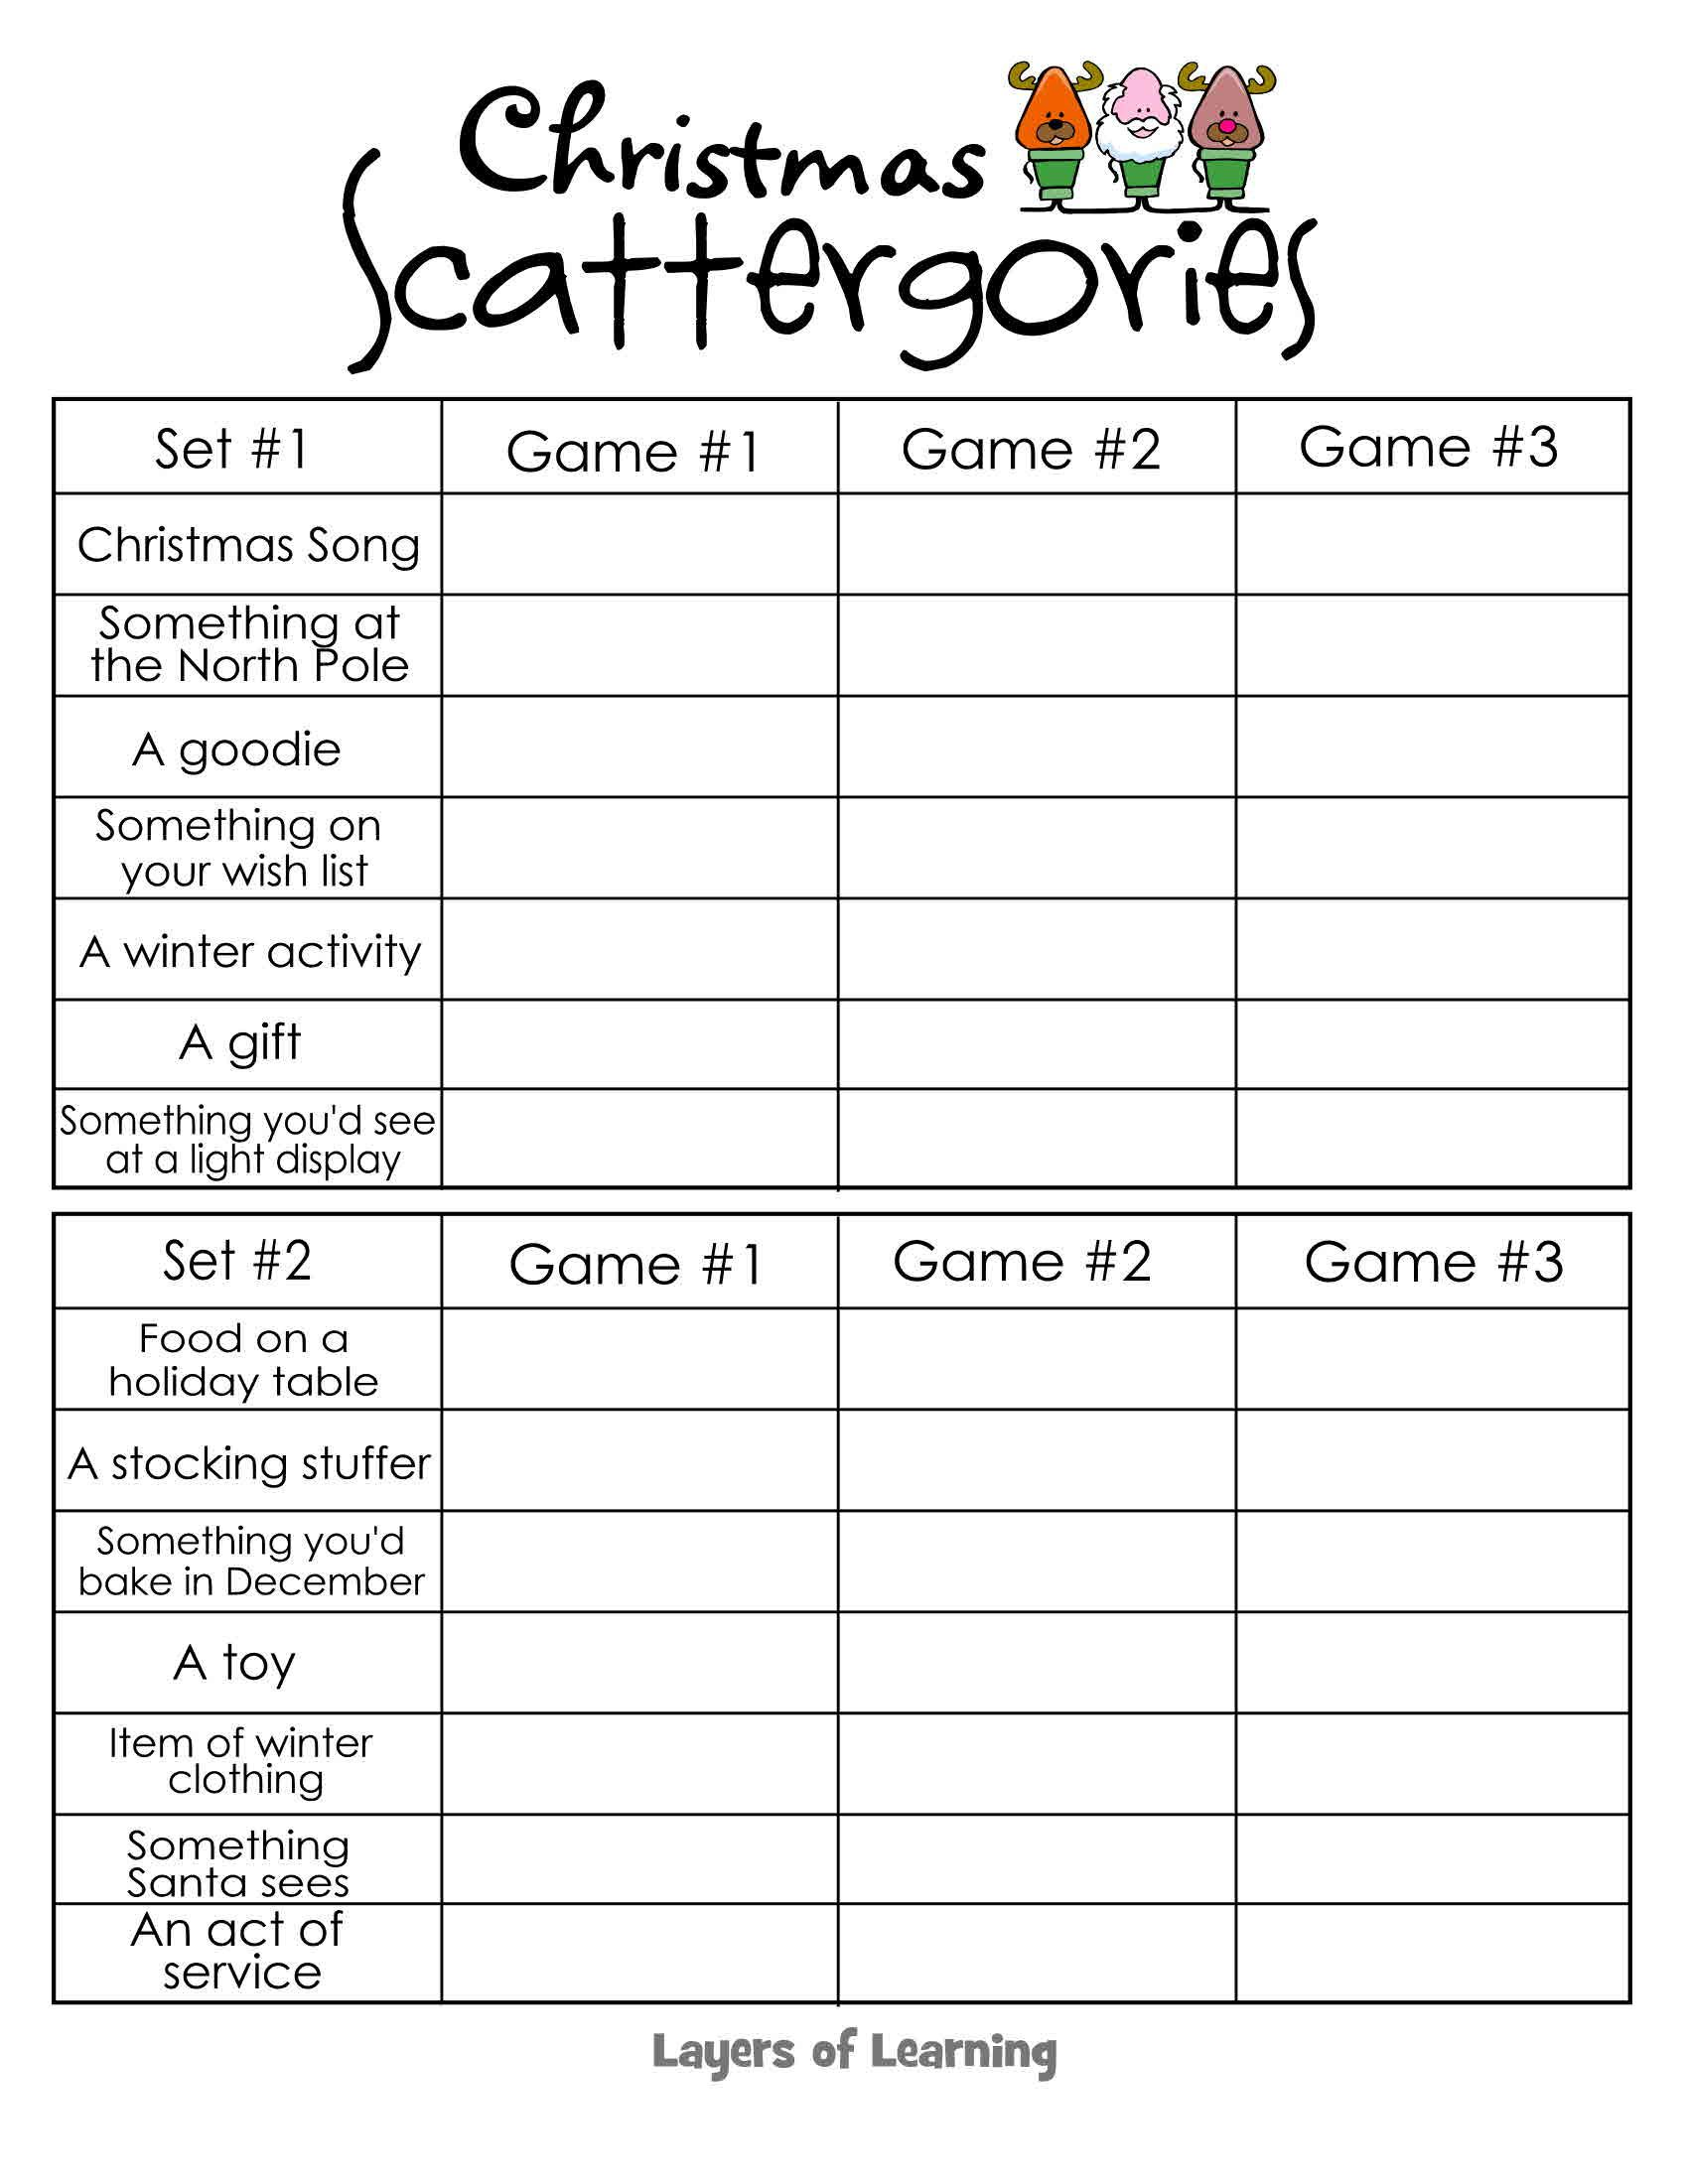 image regarding Free Printable Christmas Games for Adults called Xmas Enjoyable Finding out Xmas Xmas online games, Free of charge